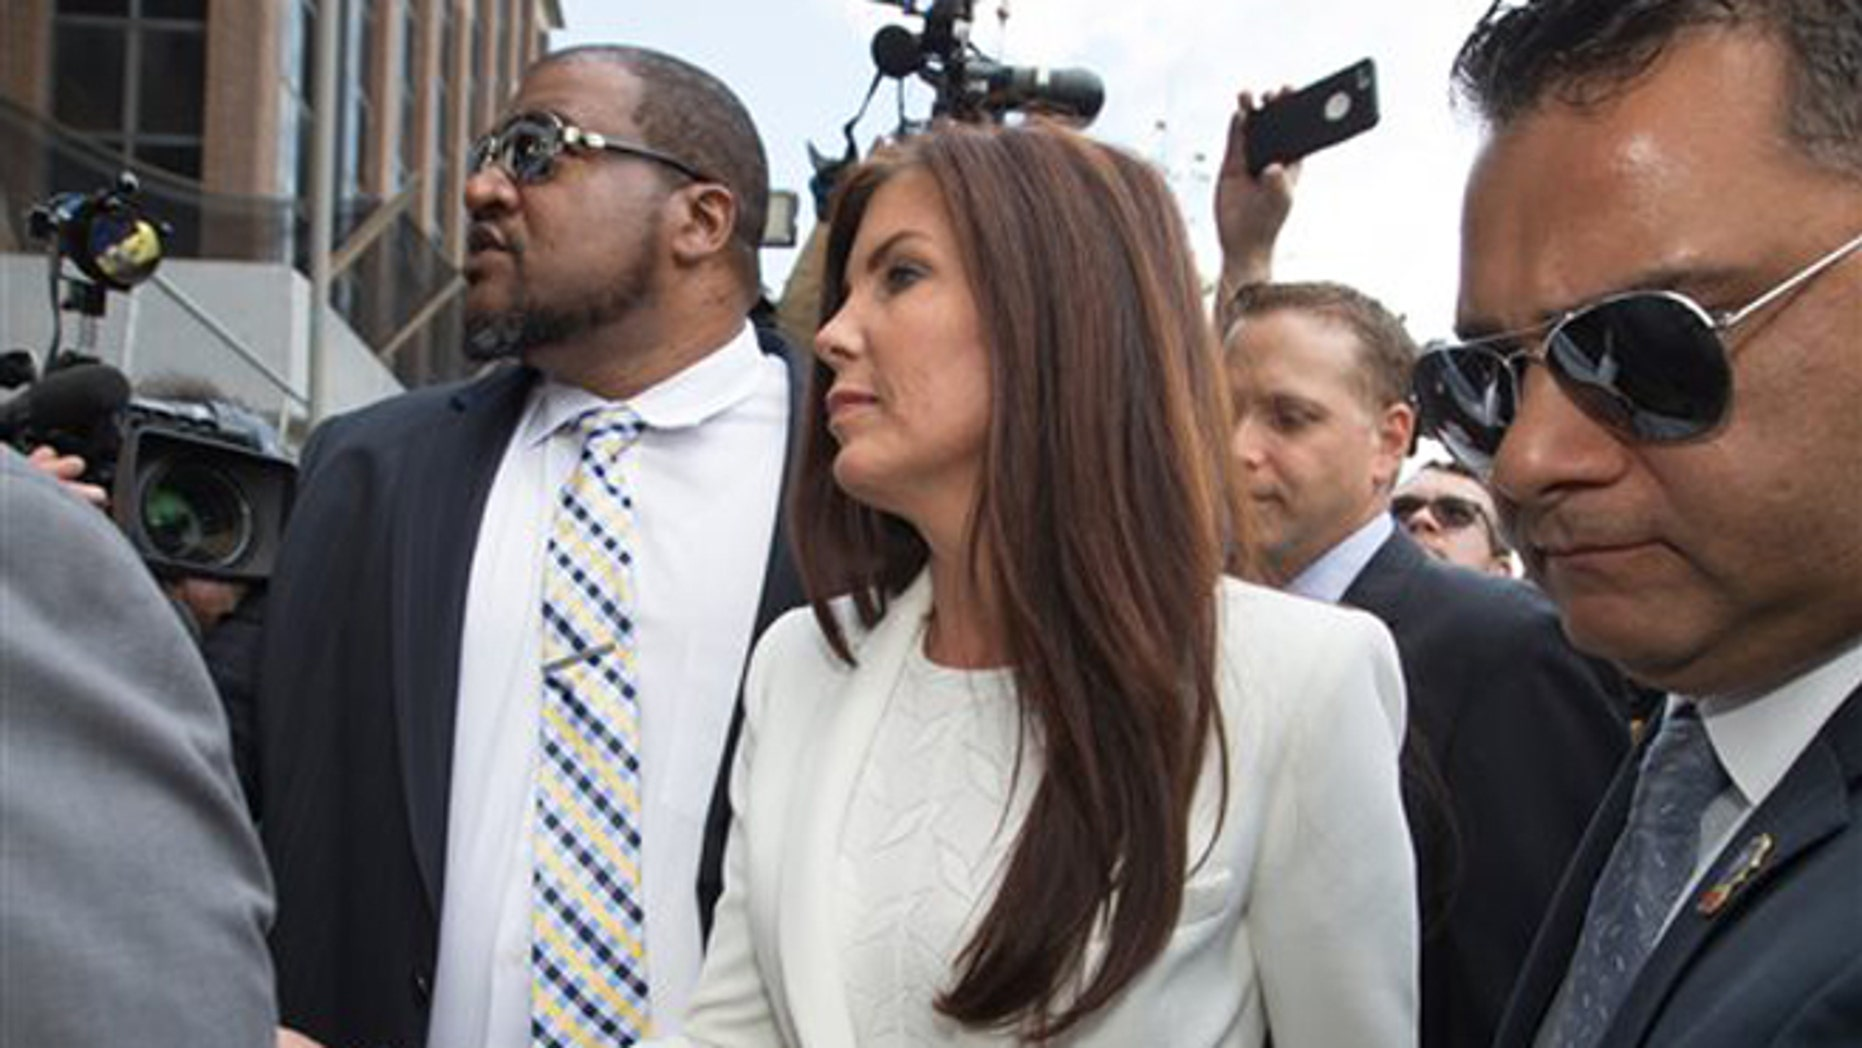 Aug. 8, 2015: Pennsylvania Attorney General Kathleen Kane arrives to be processed and arraigned on charges she leaked secret grand jury material and then lied about it under oath at the Montgomery County detective bureau in Norristown, Pa.